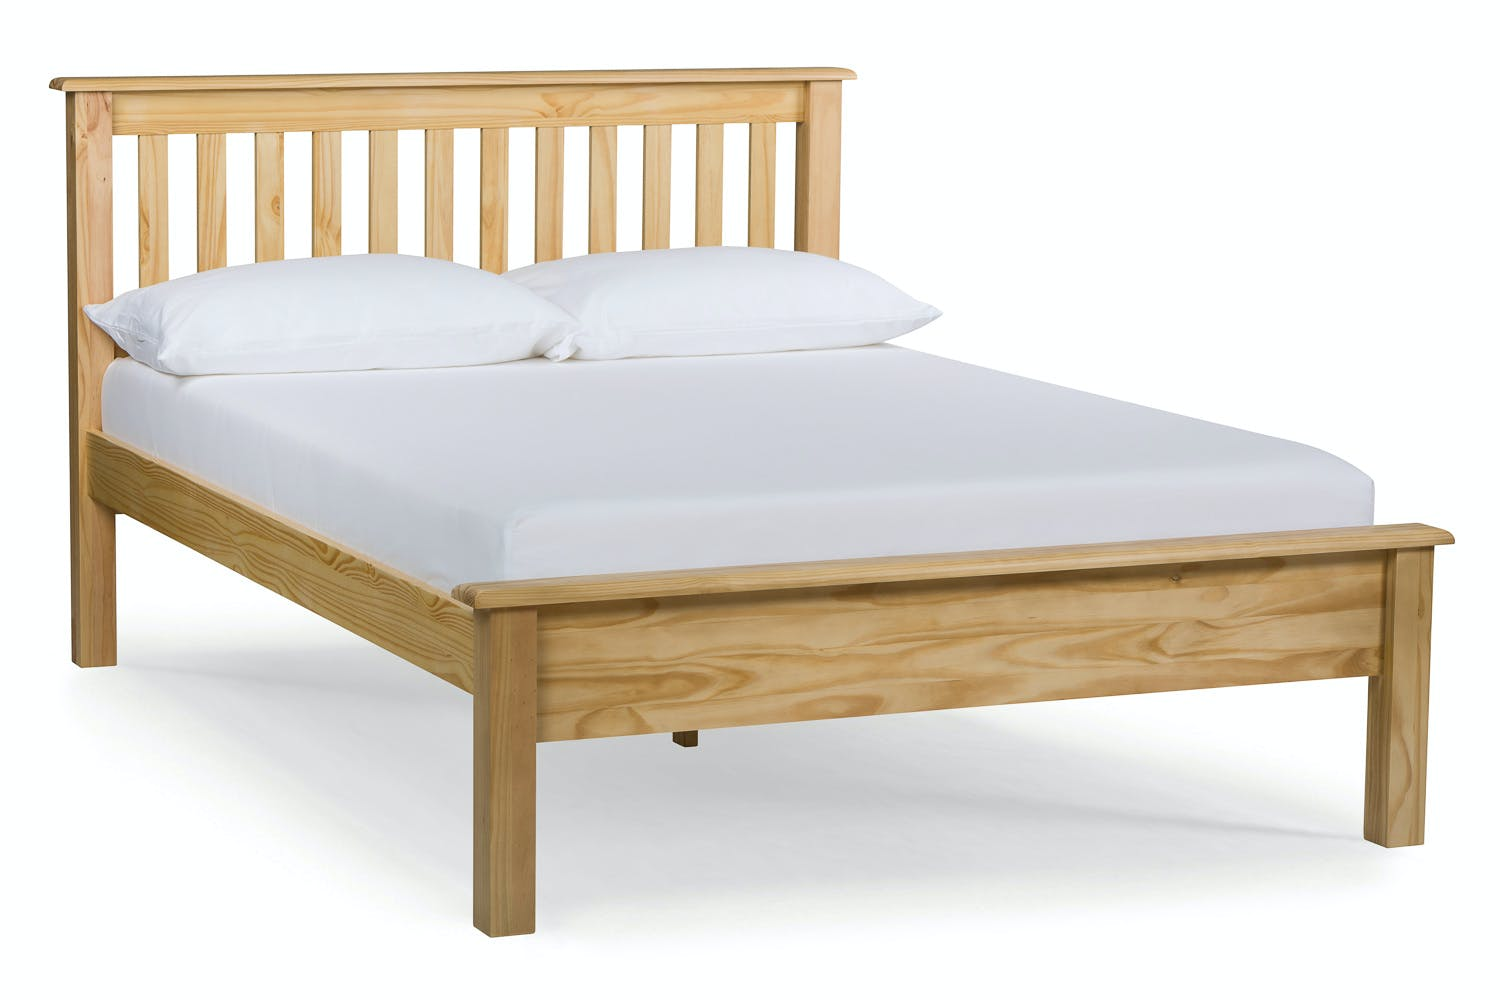 Shaker double bed frame 4ft6 ireland for Double mattress